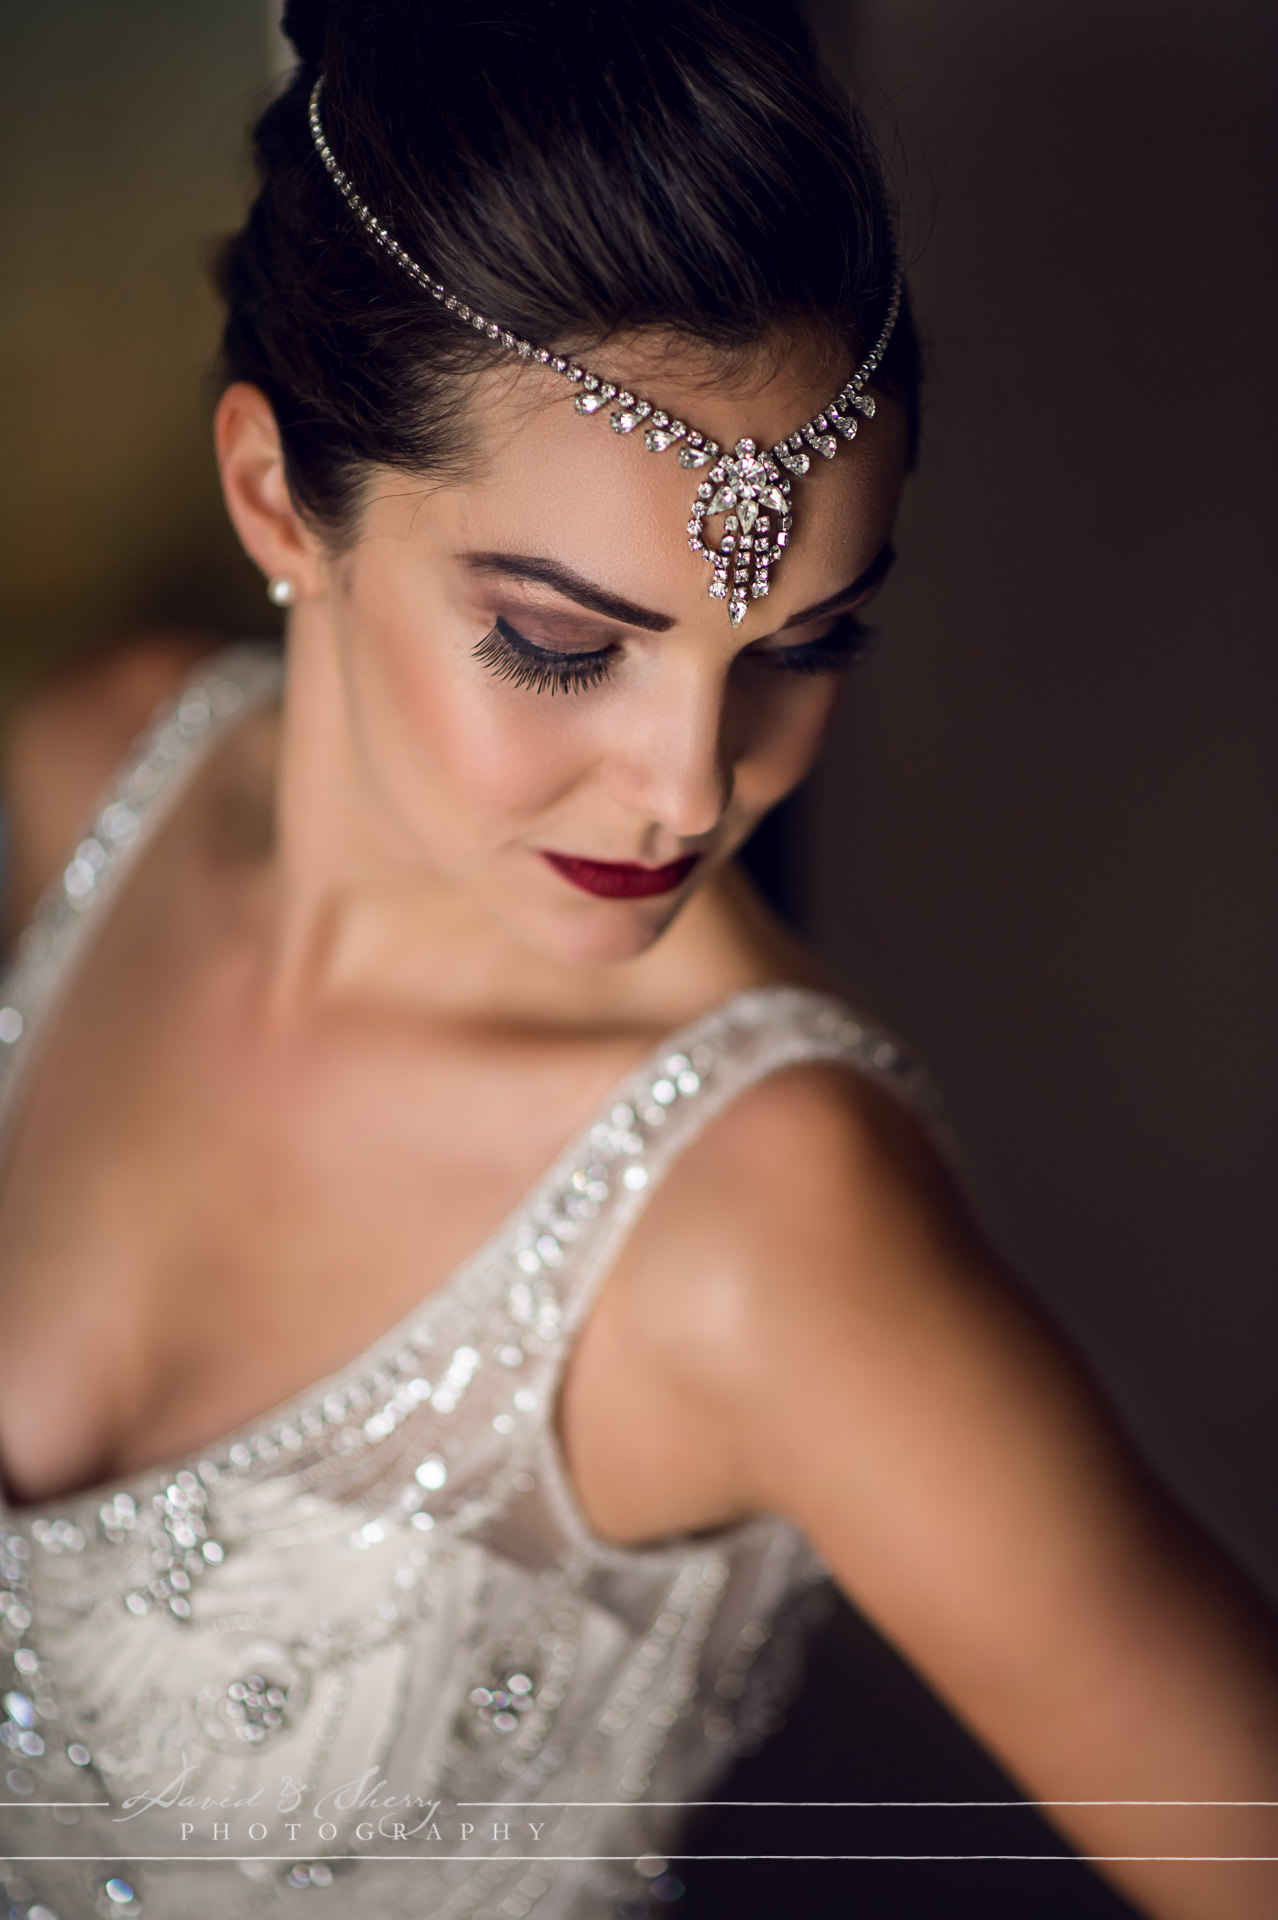 Glamourous Art Deco Bride Portrait